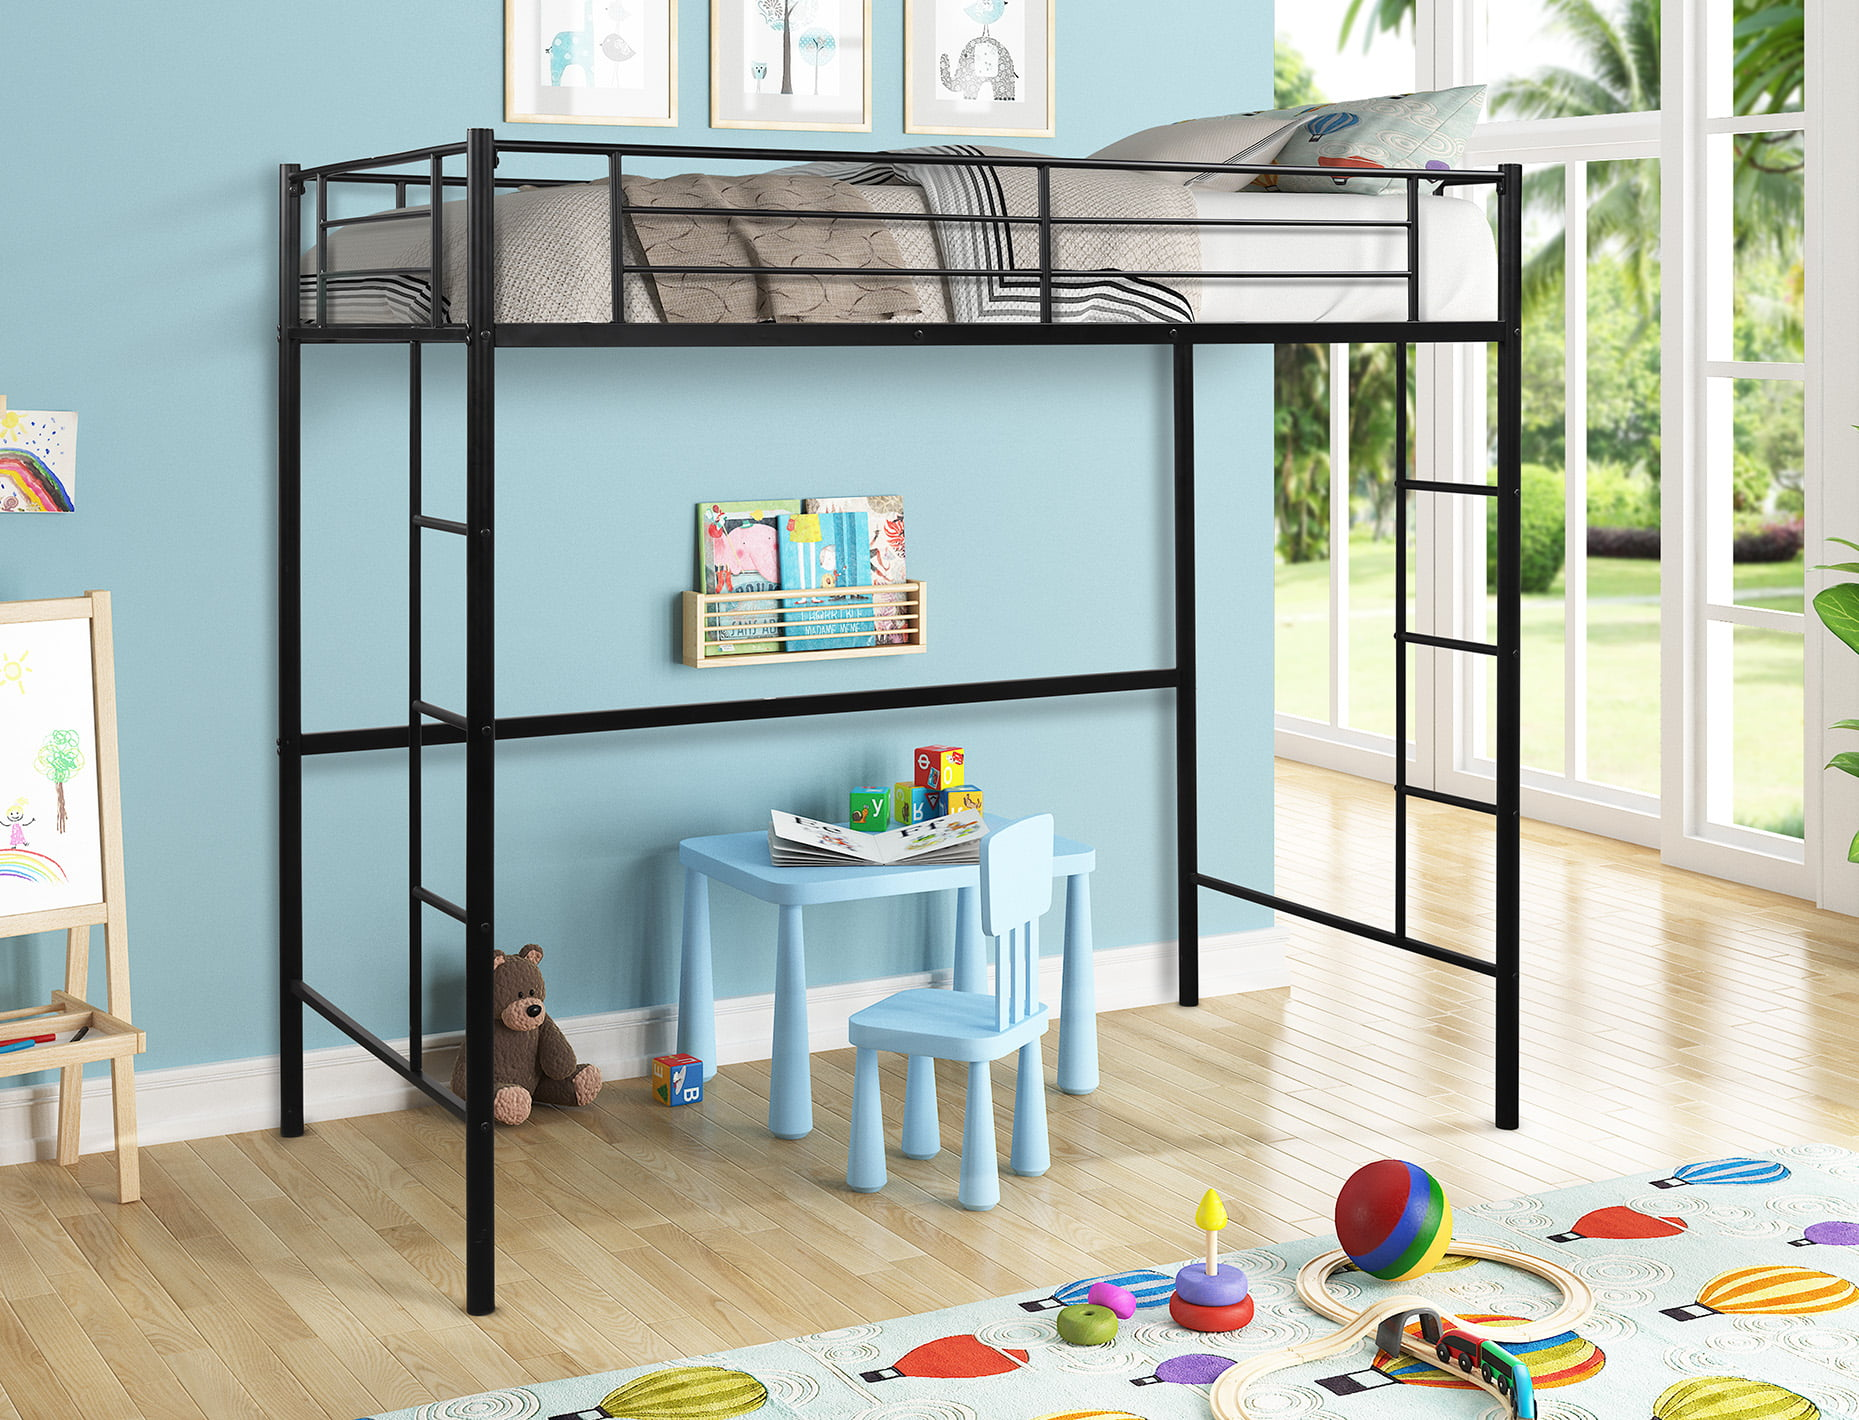 Picture of: Heavy Duty Loft Bed Frame Kid S Room Metal Loft Twin Bed Loft Bunk Bed For Teenage Girls Boys Bedroom Twin Loft Bed Frame With Safety Guardrails Ladder Headboards No Box Spring Needed Black A516